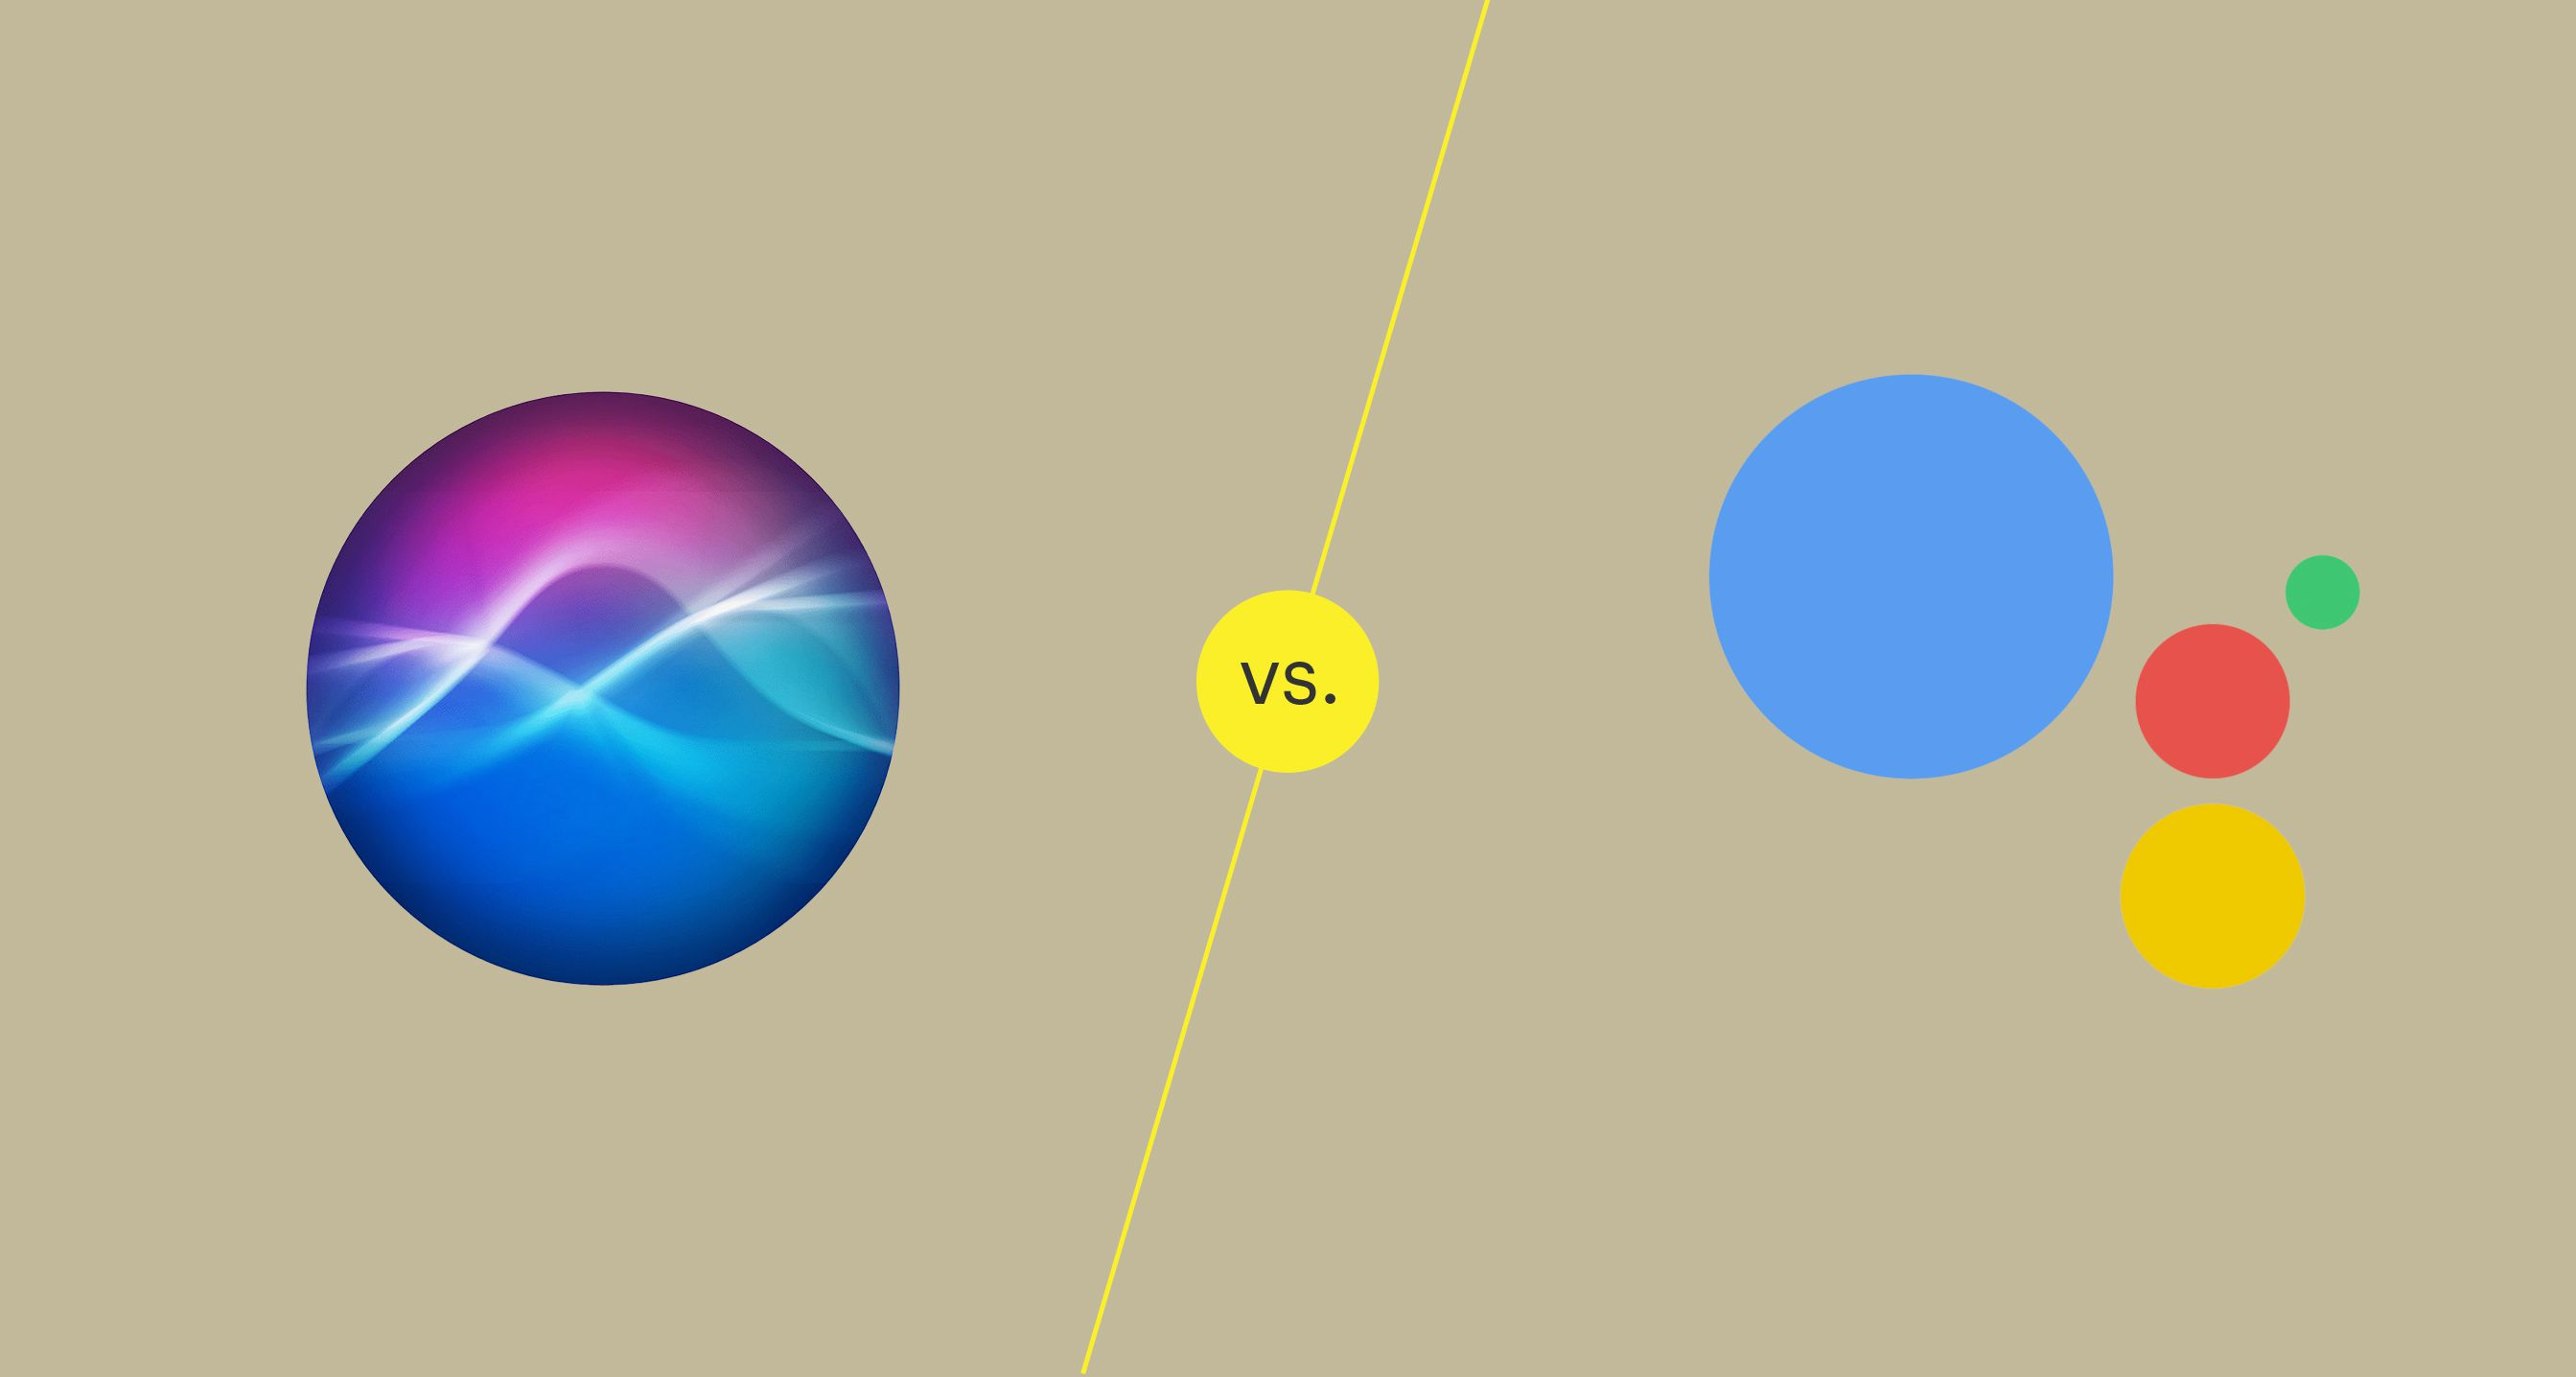 Siri vs. Google: Which Assistant Fits Your Needs?